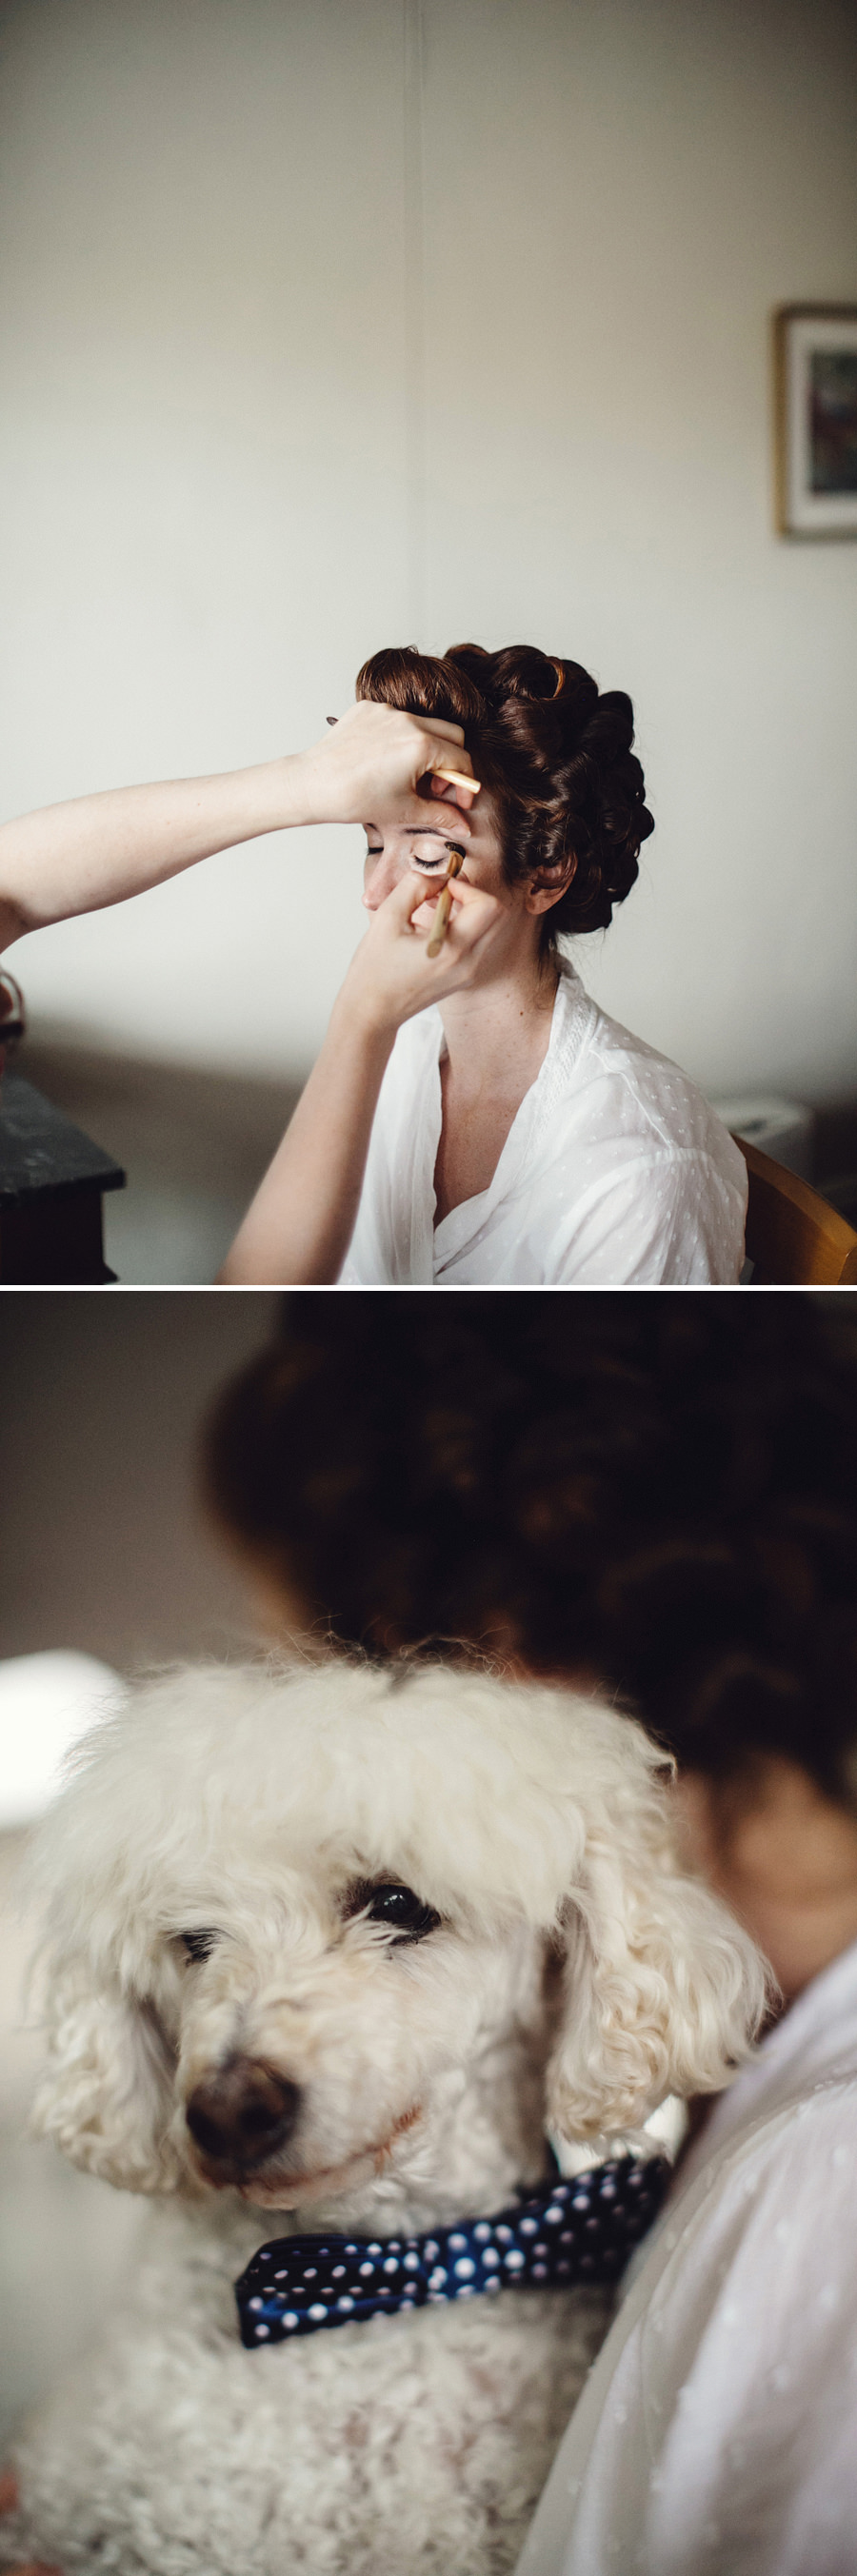 Bondi Wedding Photographers: Girls getting ready